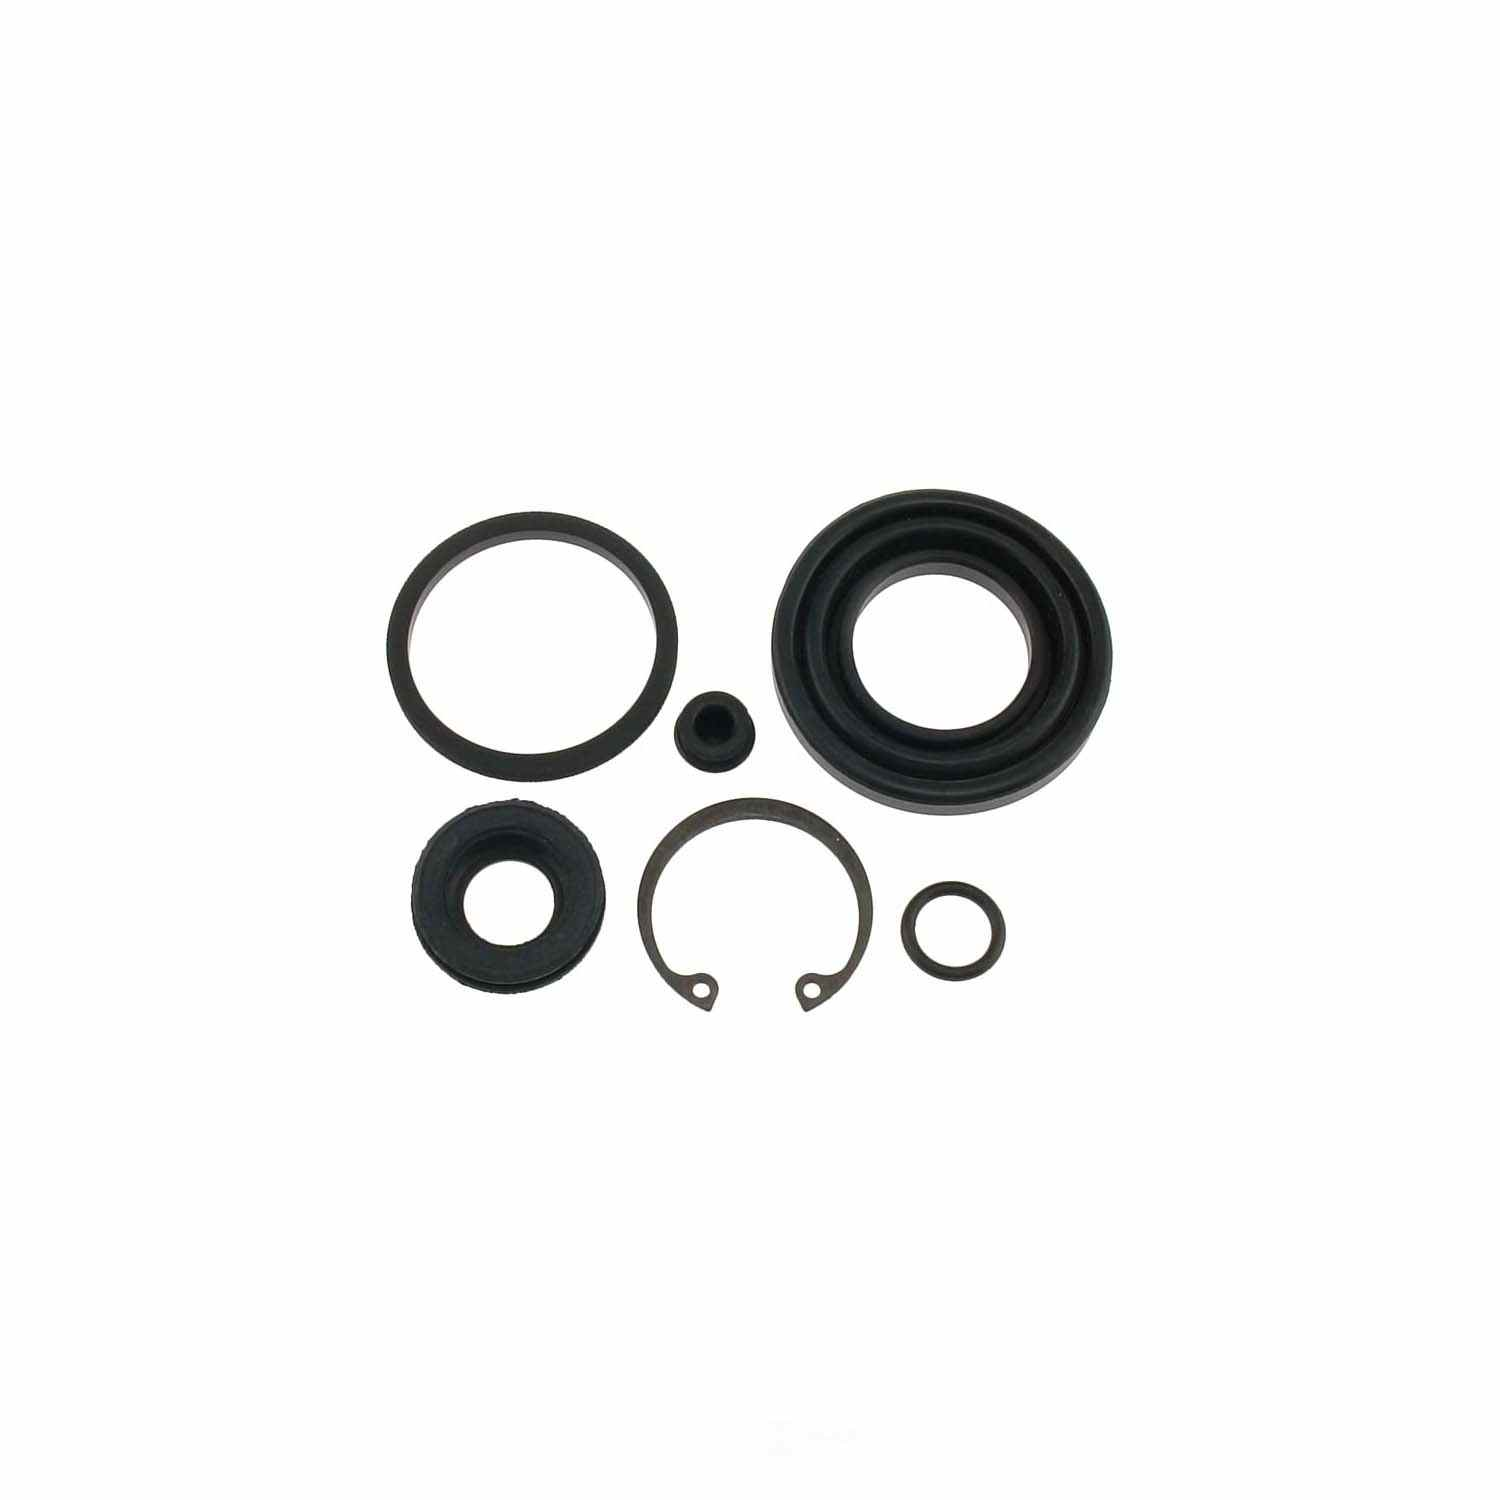 CARLSON QUALITY BRAKE PARTS - Disc Brake Caliper Repair Kit (Rear) - CRL 15267